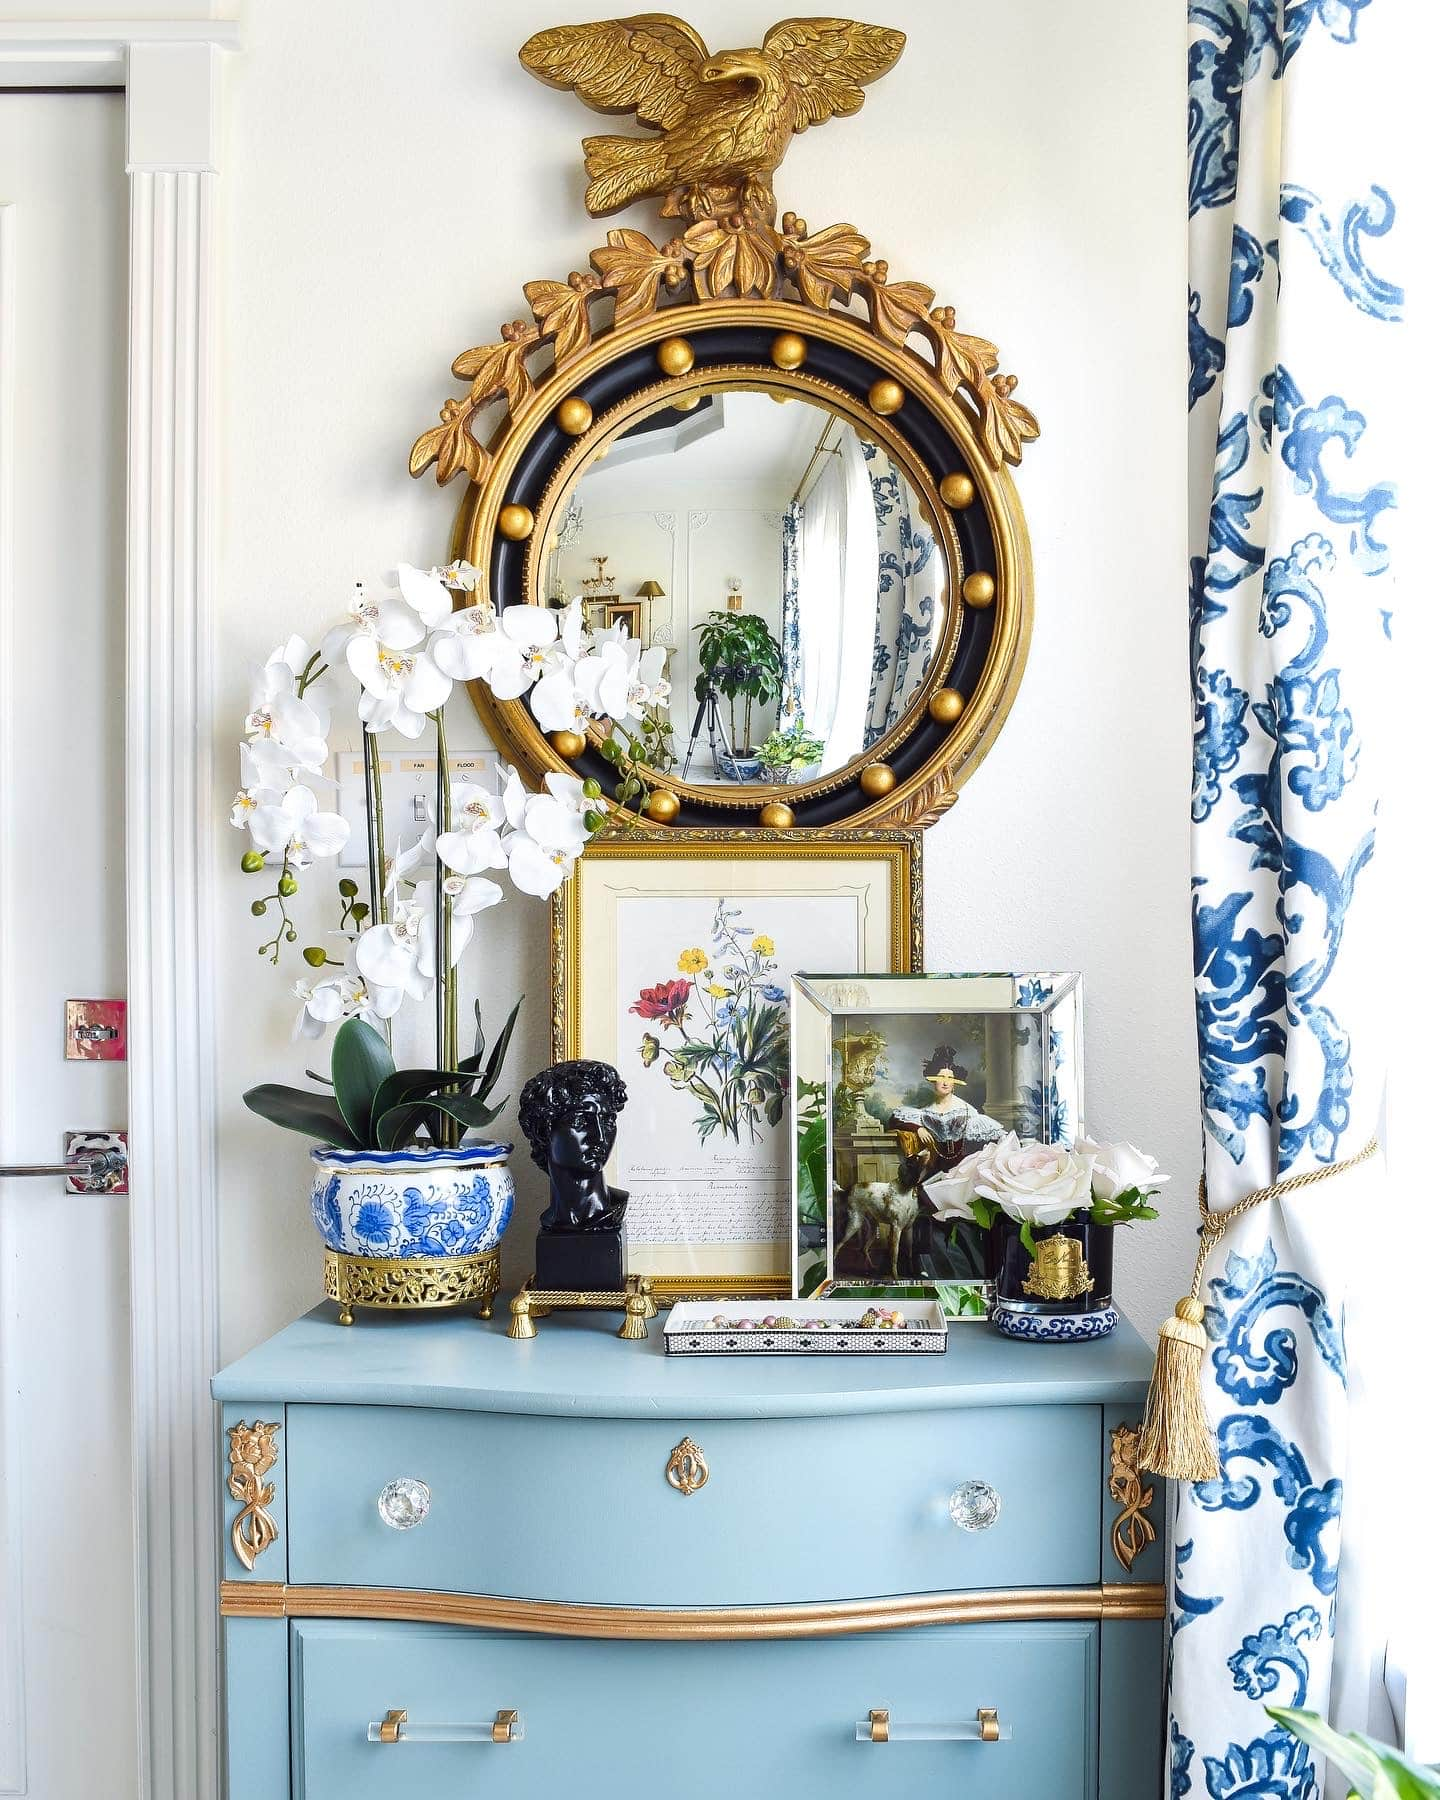 Farrow and Ball Oval Room Blue Dresser